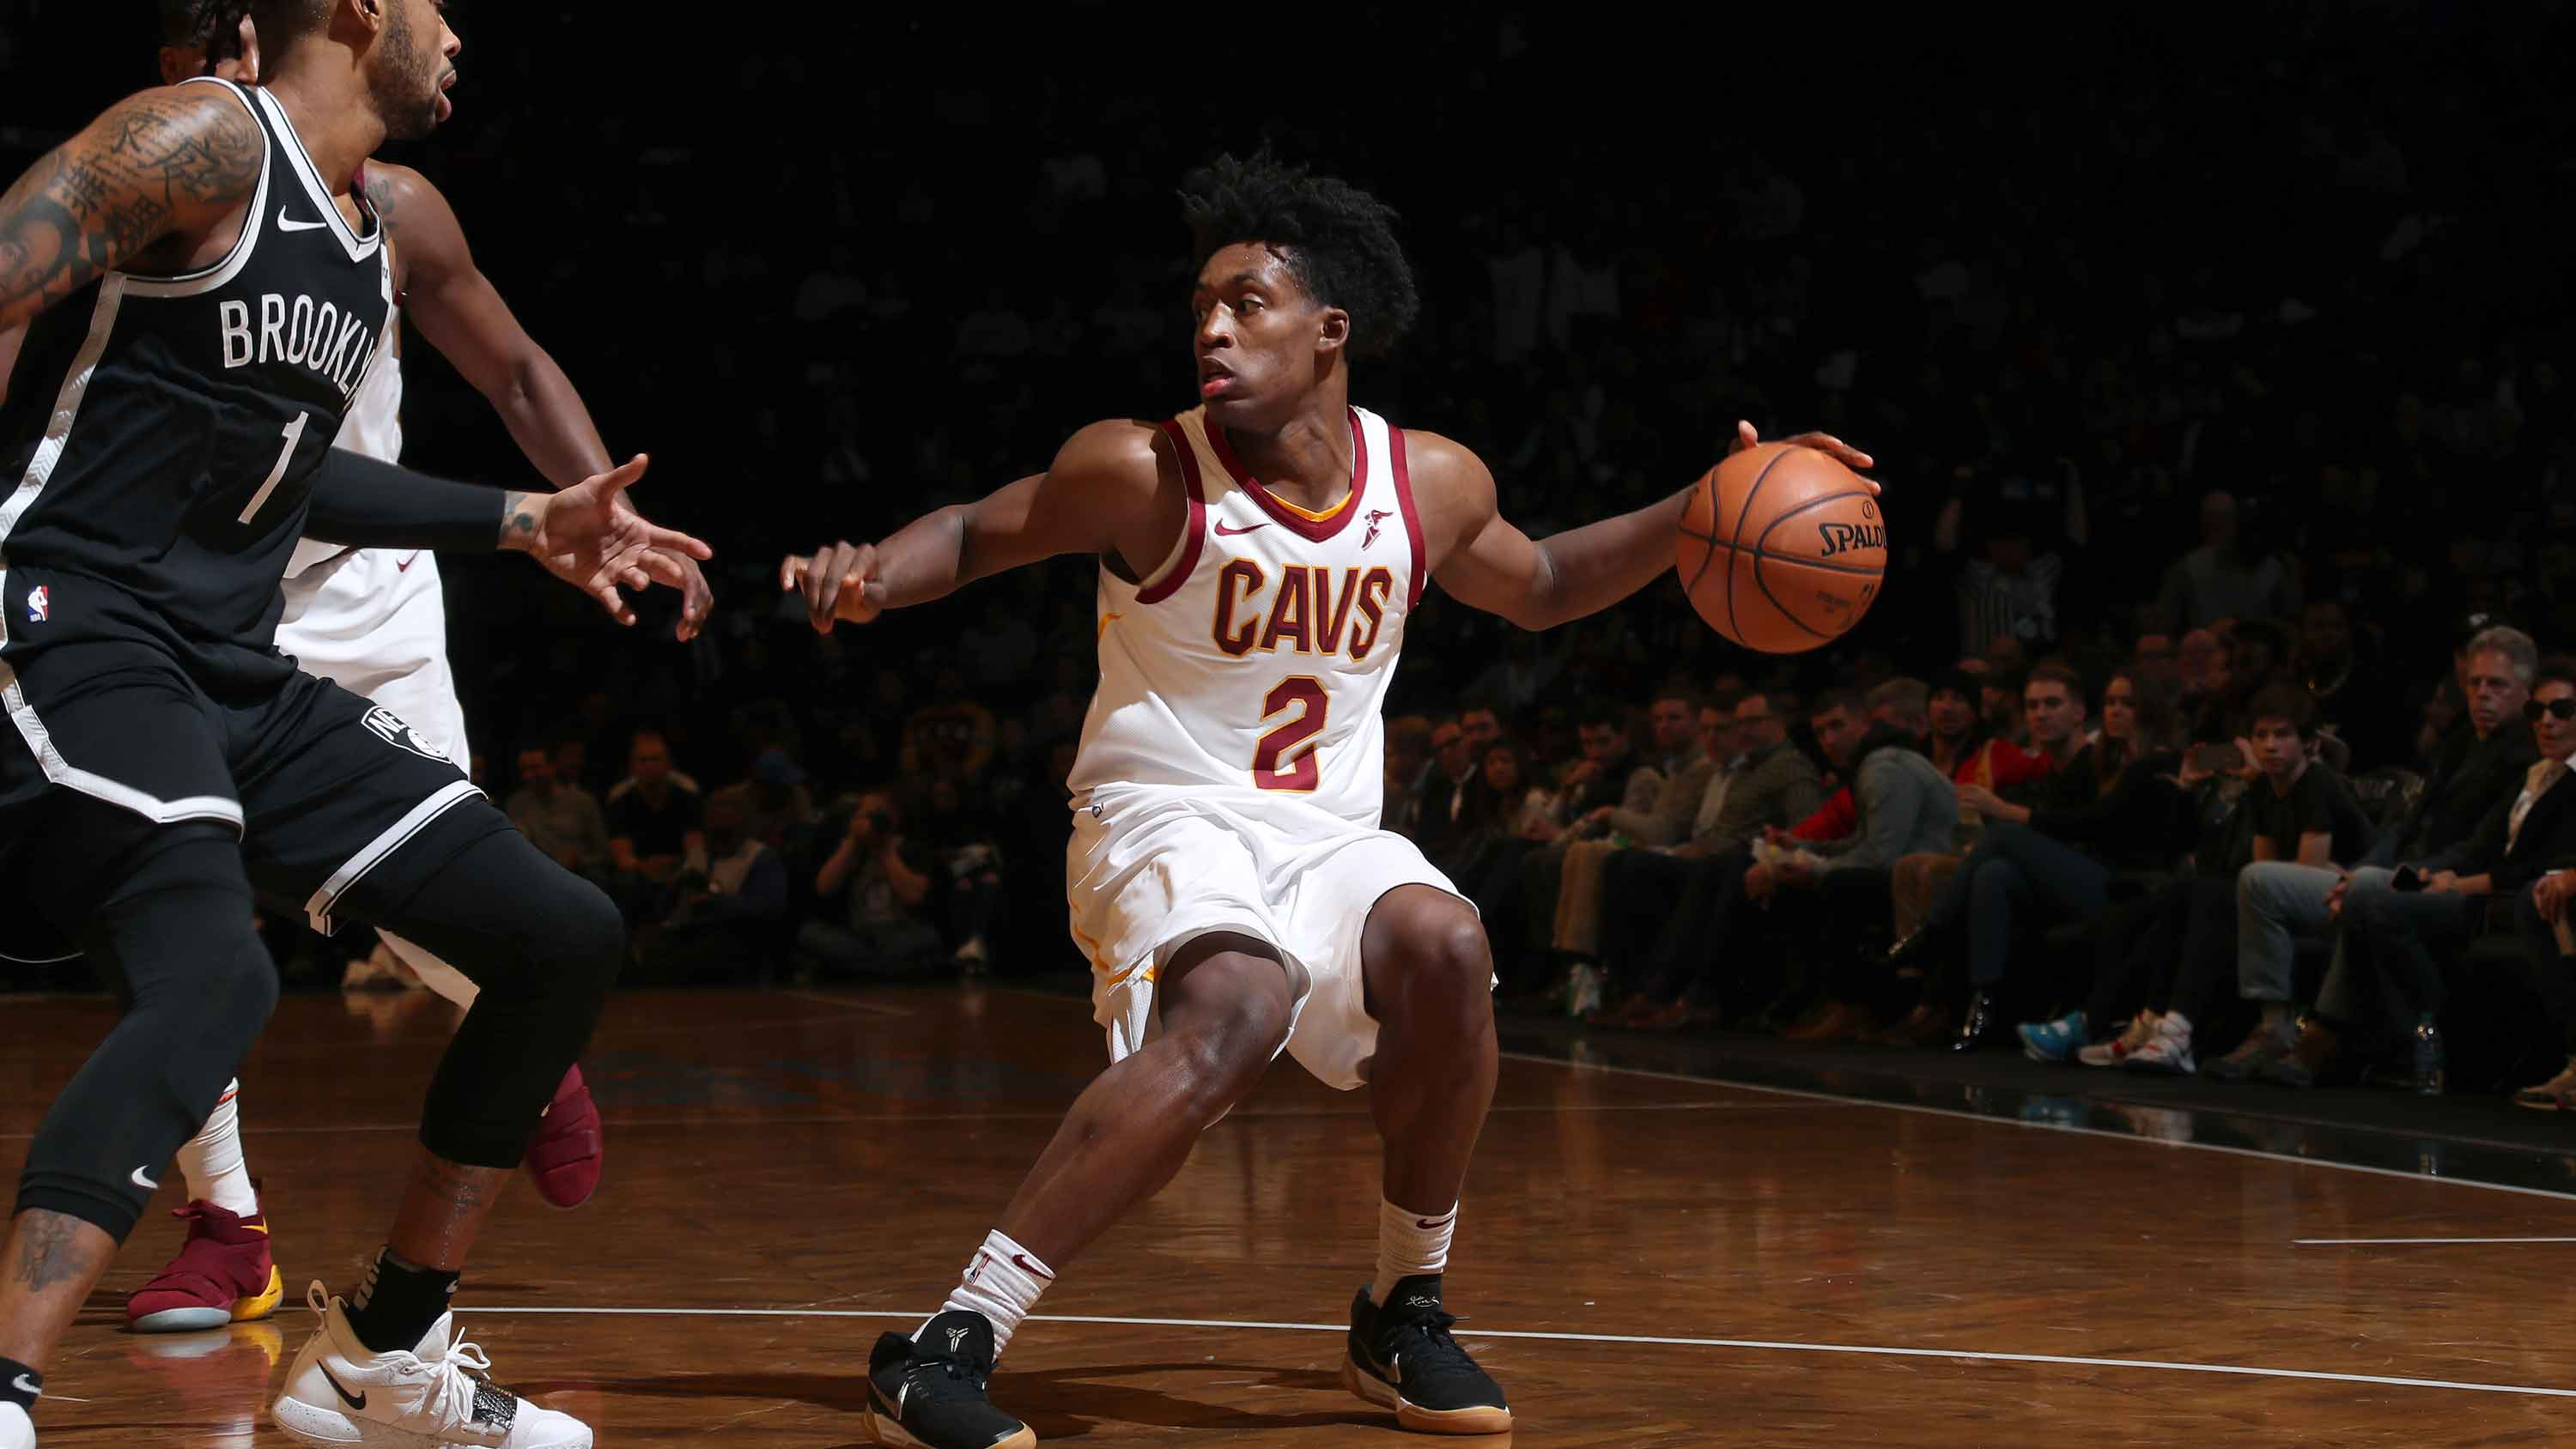 GAME RECAP: Cavaliers 99, Nets 97